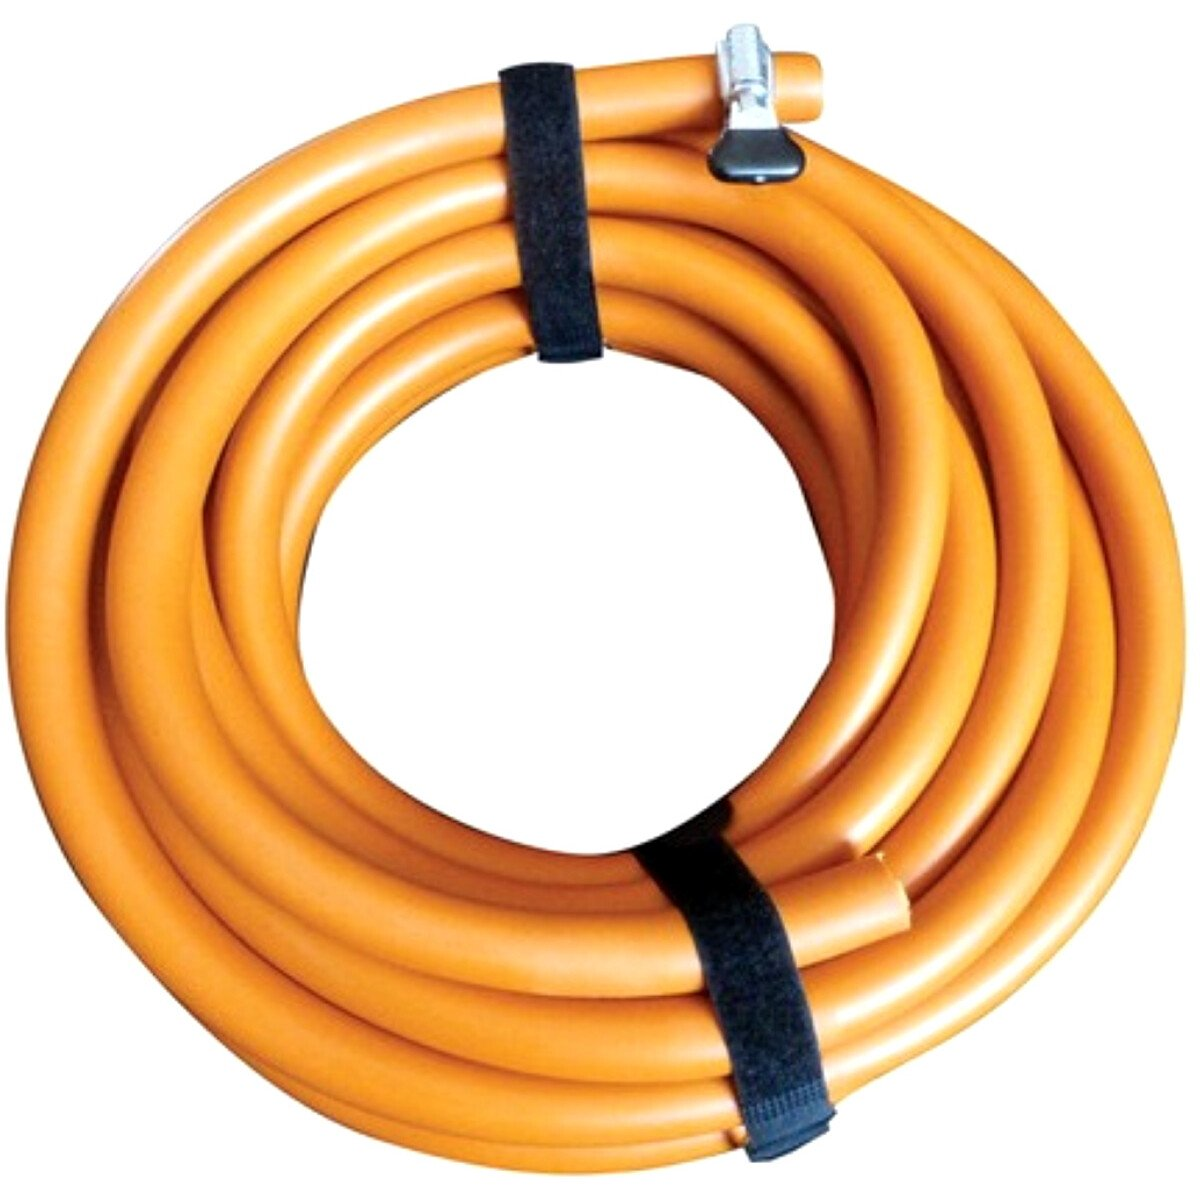 Dickie Dyer 991866 Drain Down Hose Kit 4 Piece